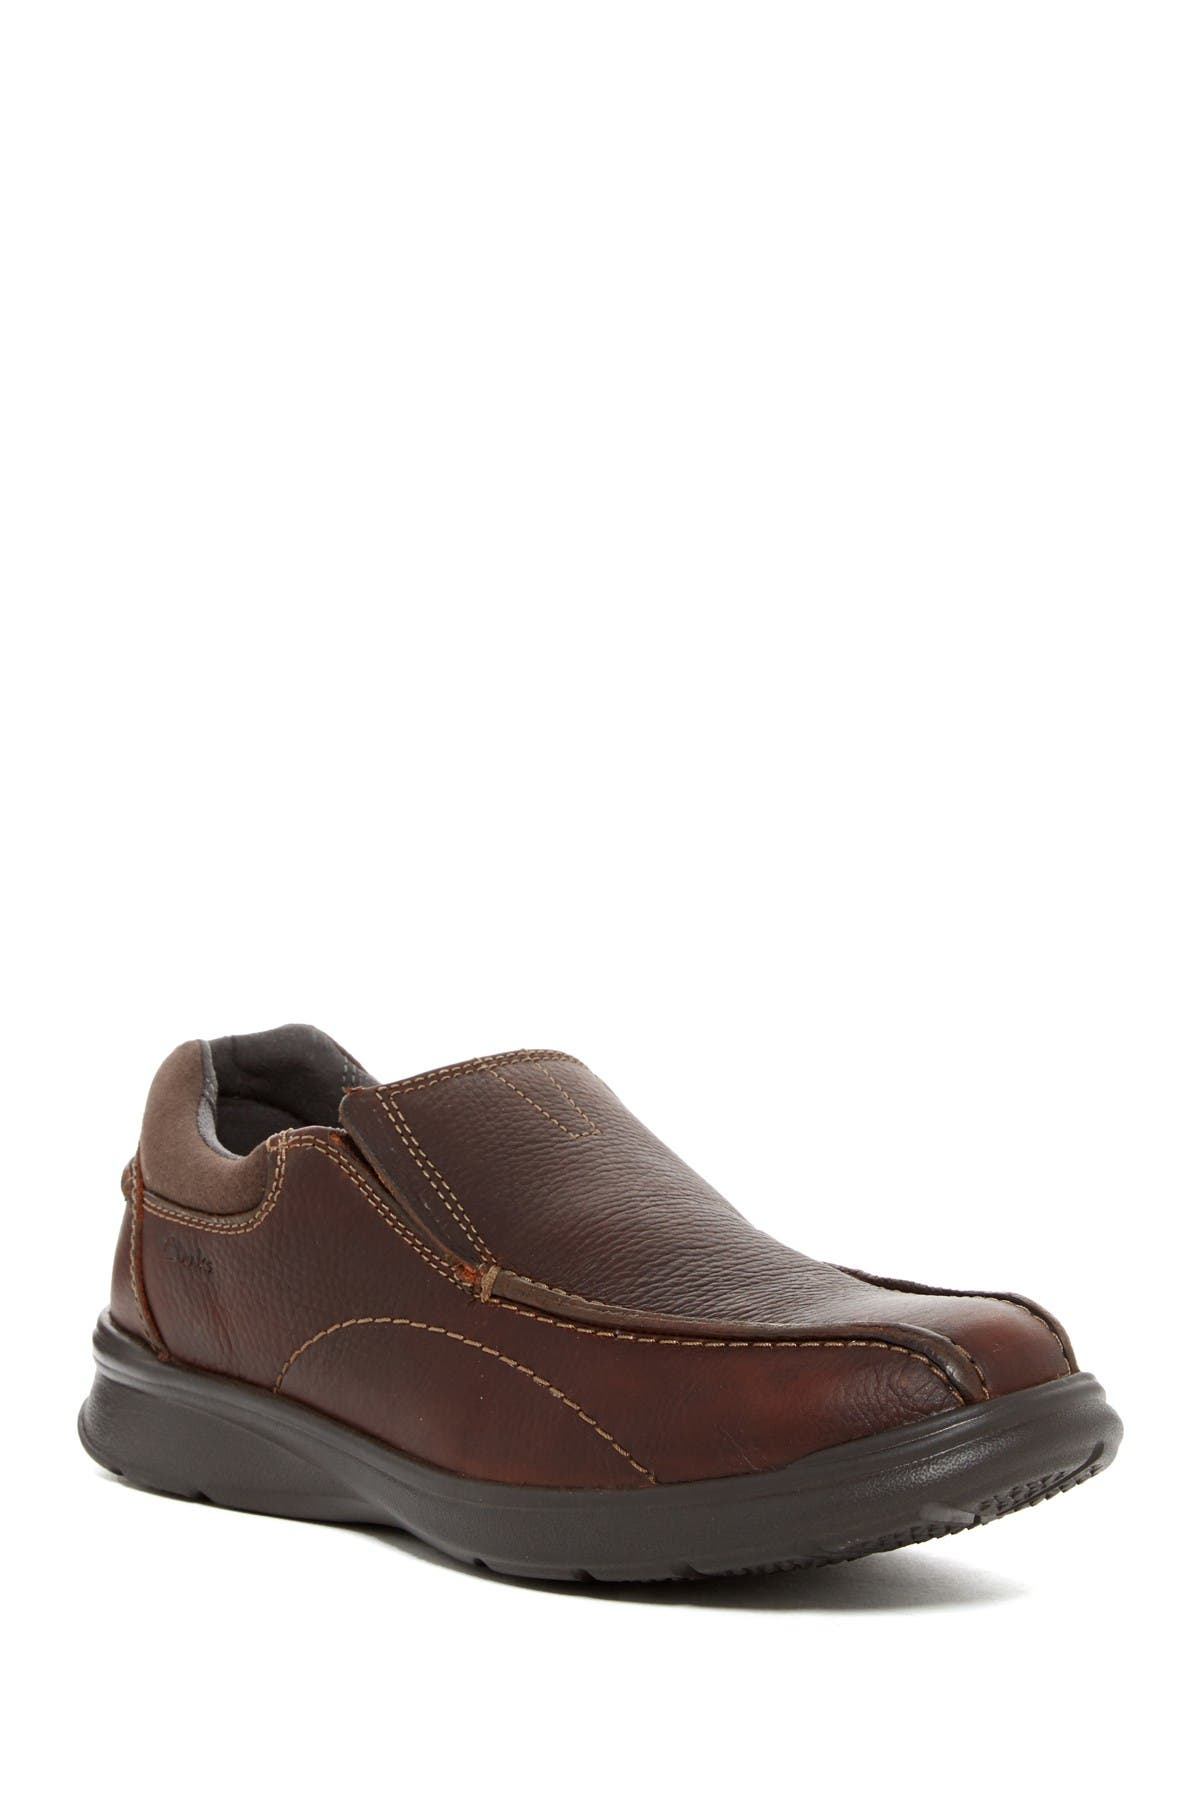 Clarks | Cotrell Step Leather Slip-On